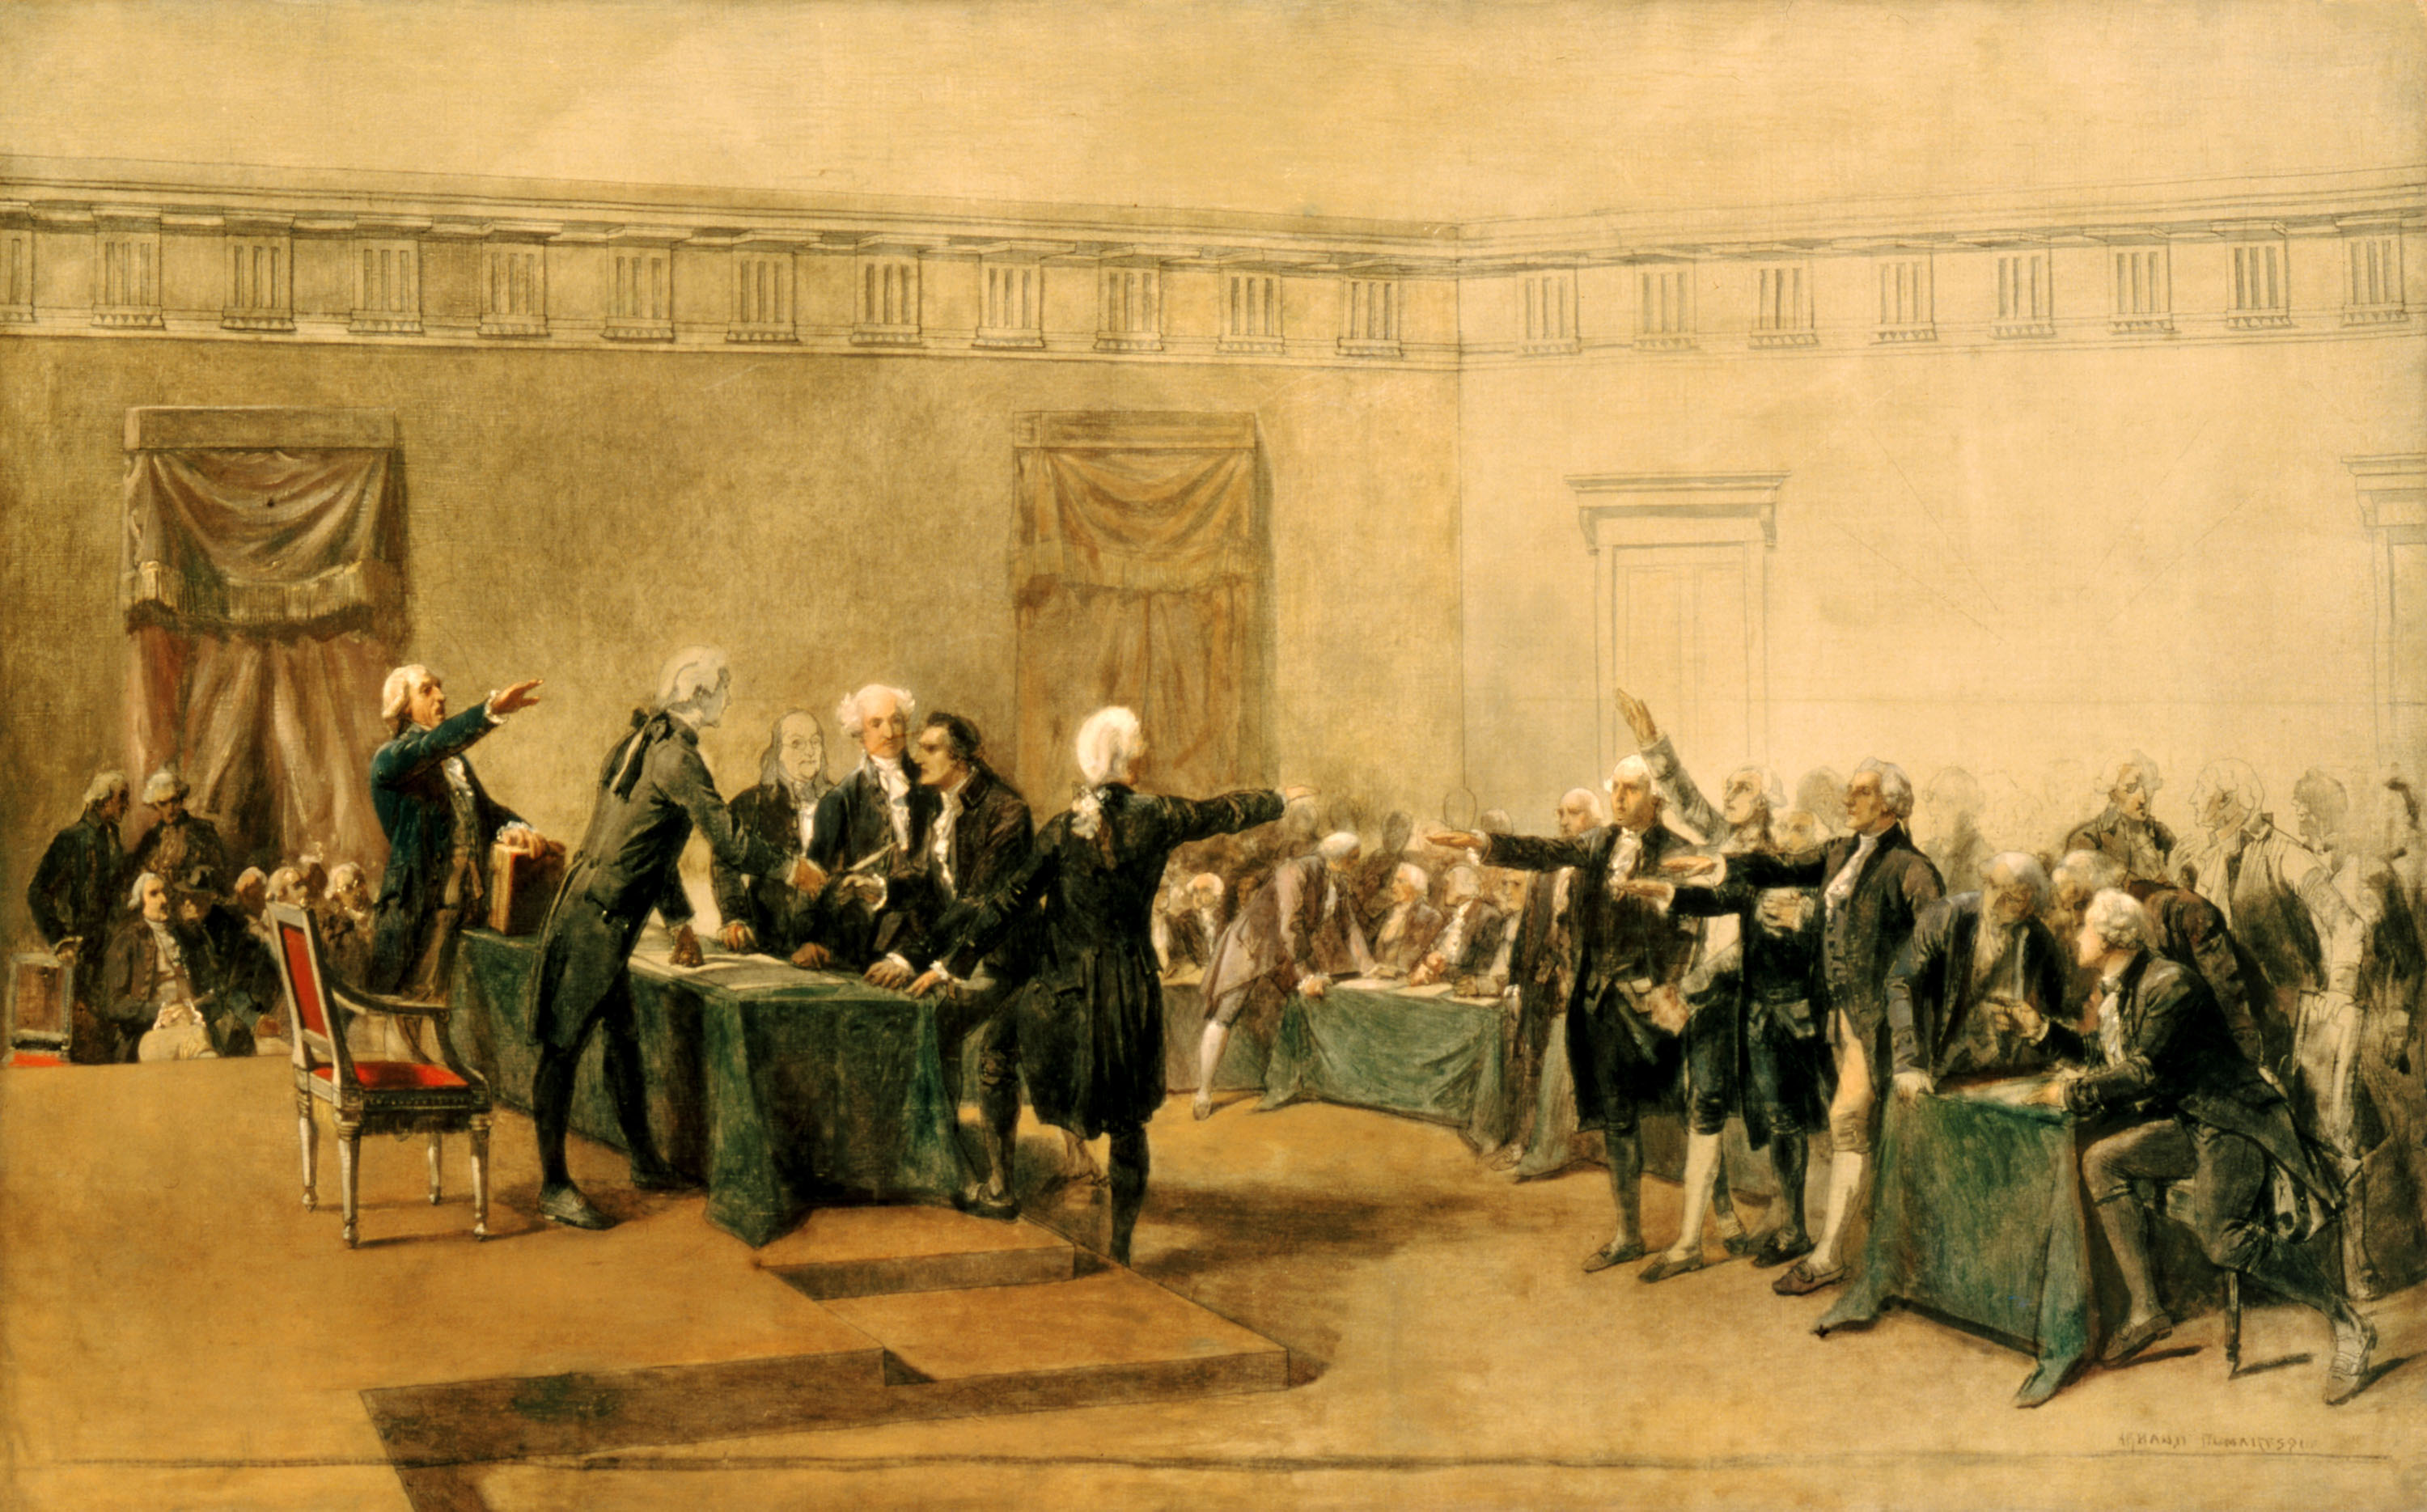 http://upload.wikimedia.org/wikipedia/commons/7/77/Signing_of_Declaration_of_Independence_by_Armand-Dumaresq,_c1873_-_restored.jpg